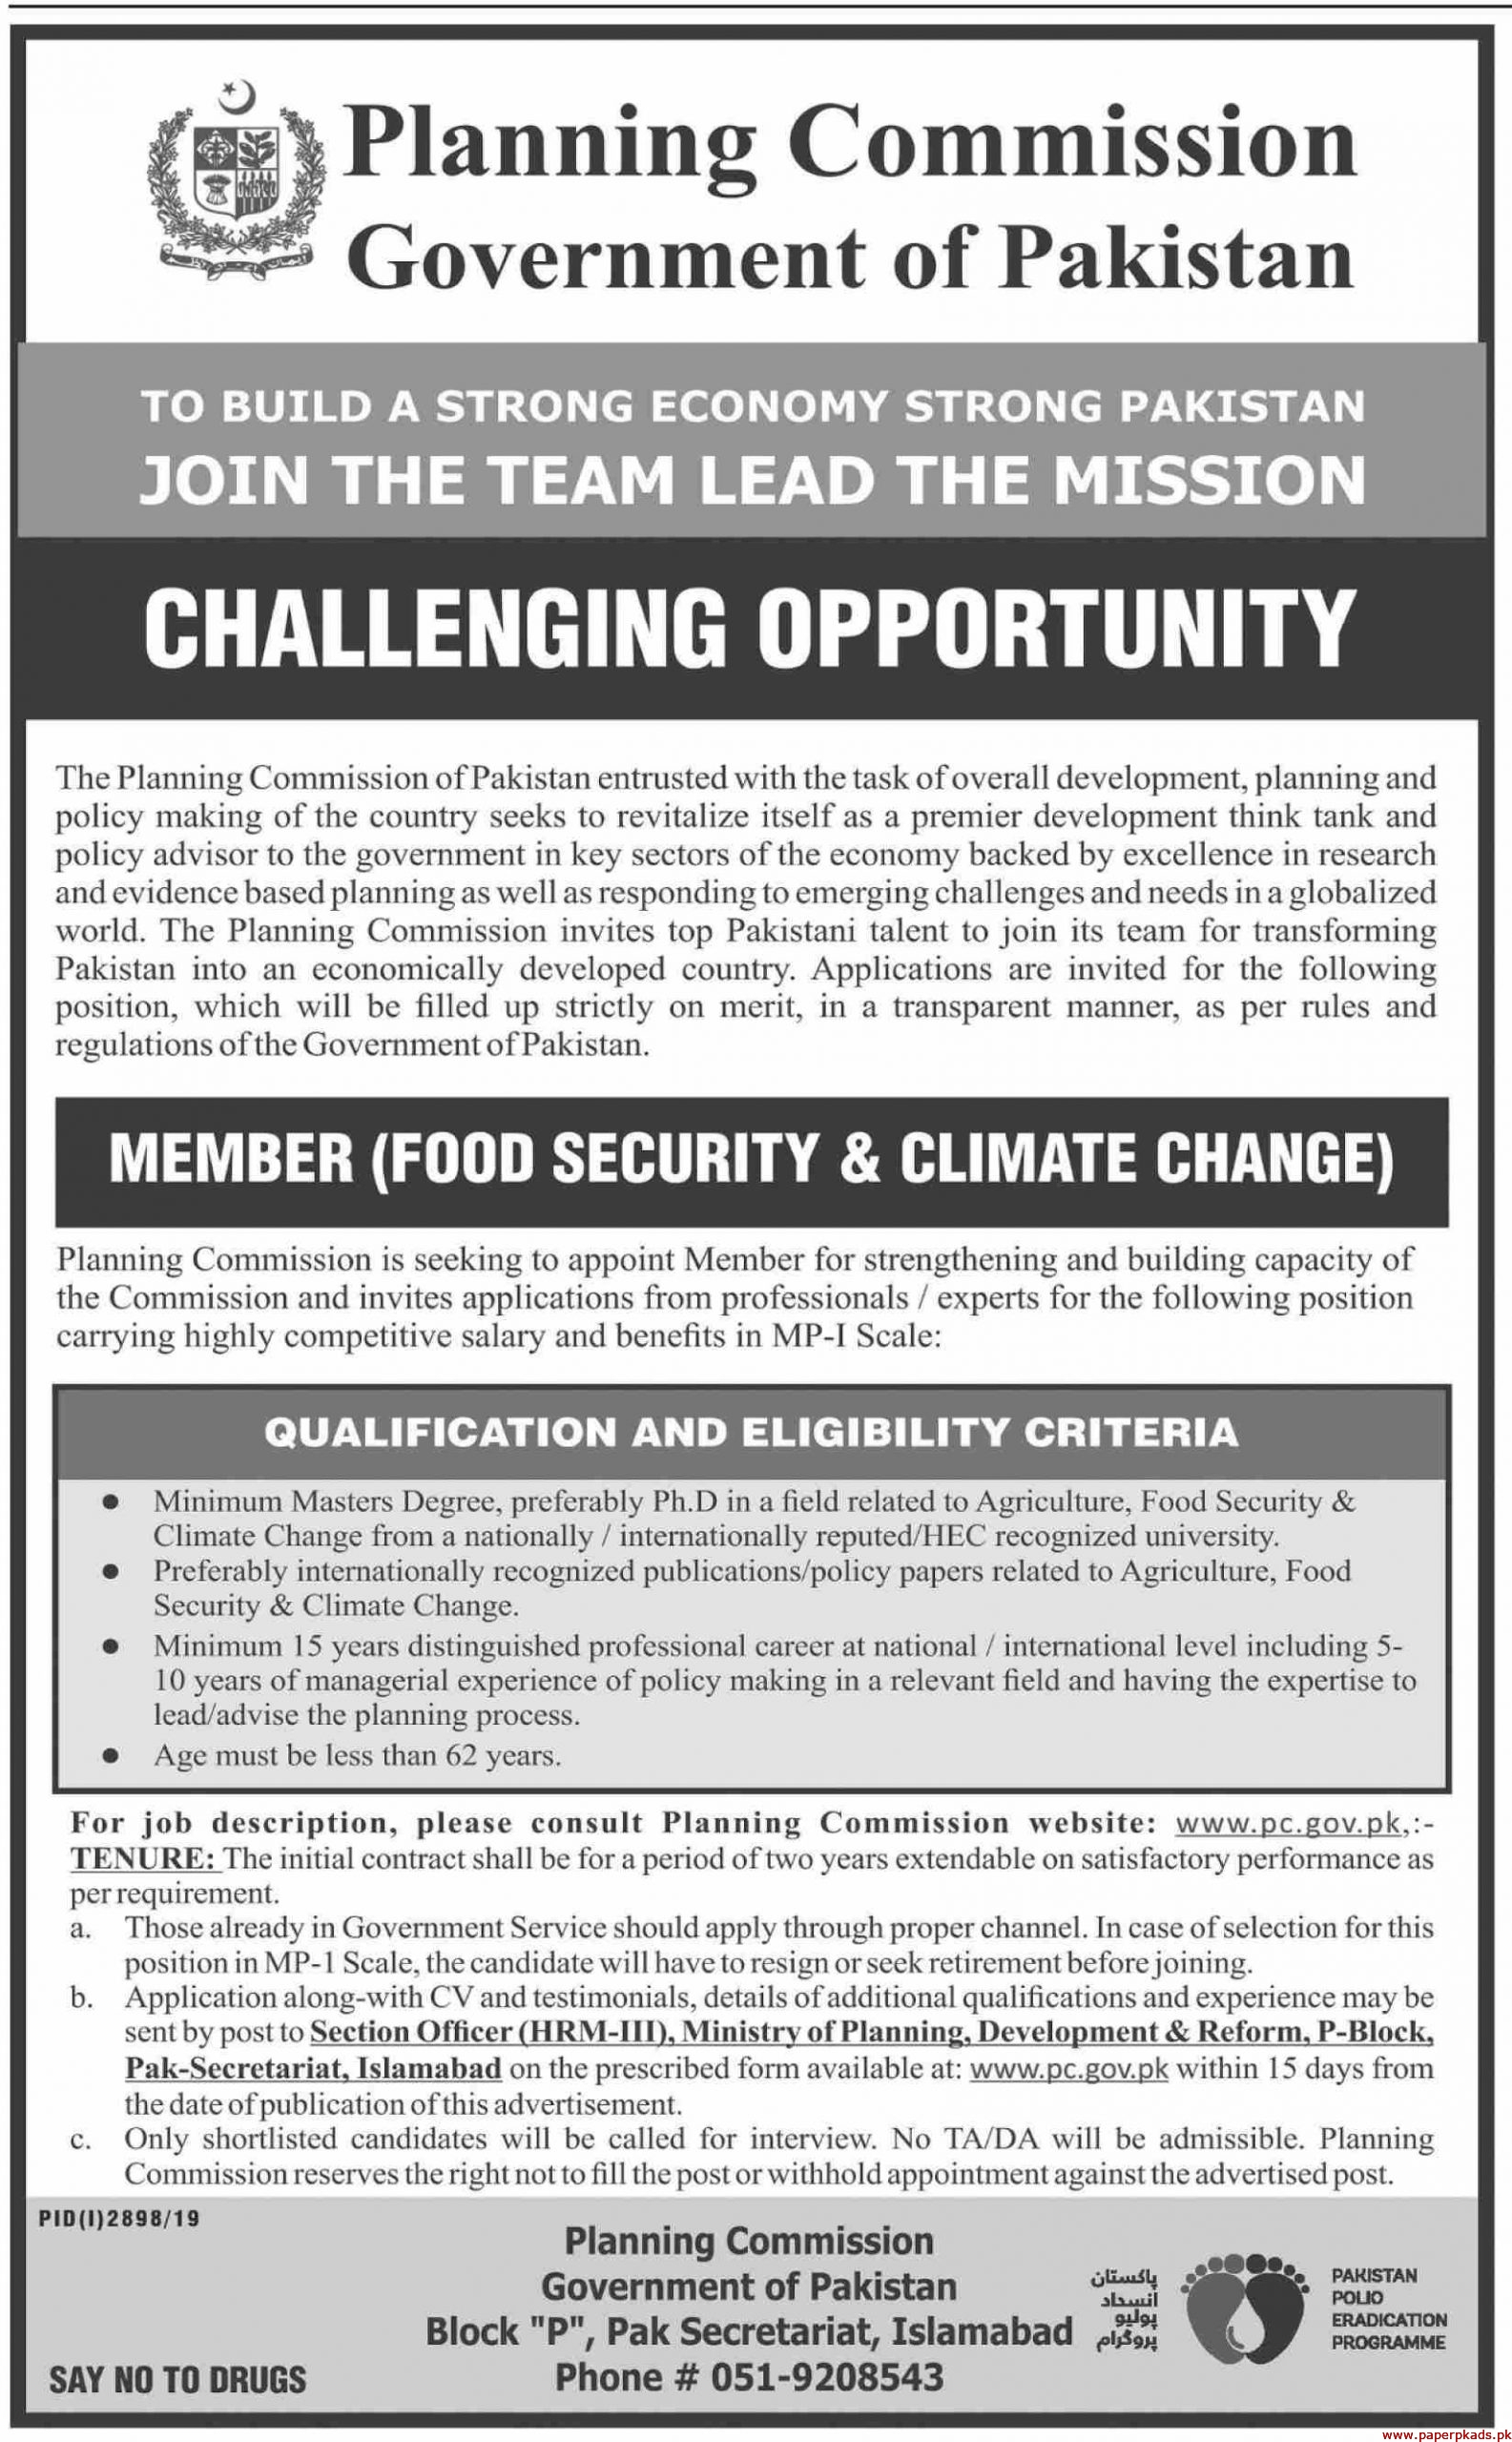 Planning Commission Government of Pakistan Latest Jobs 2019